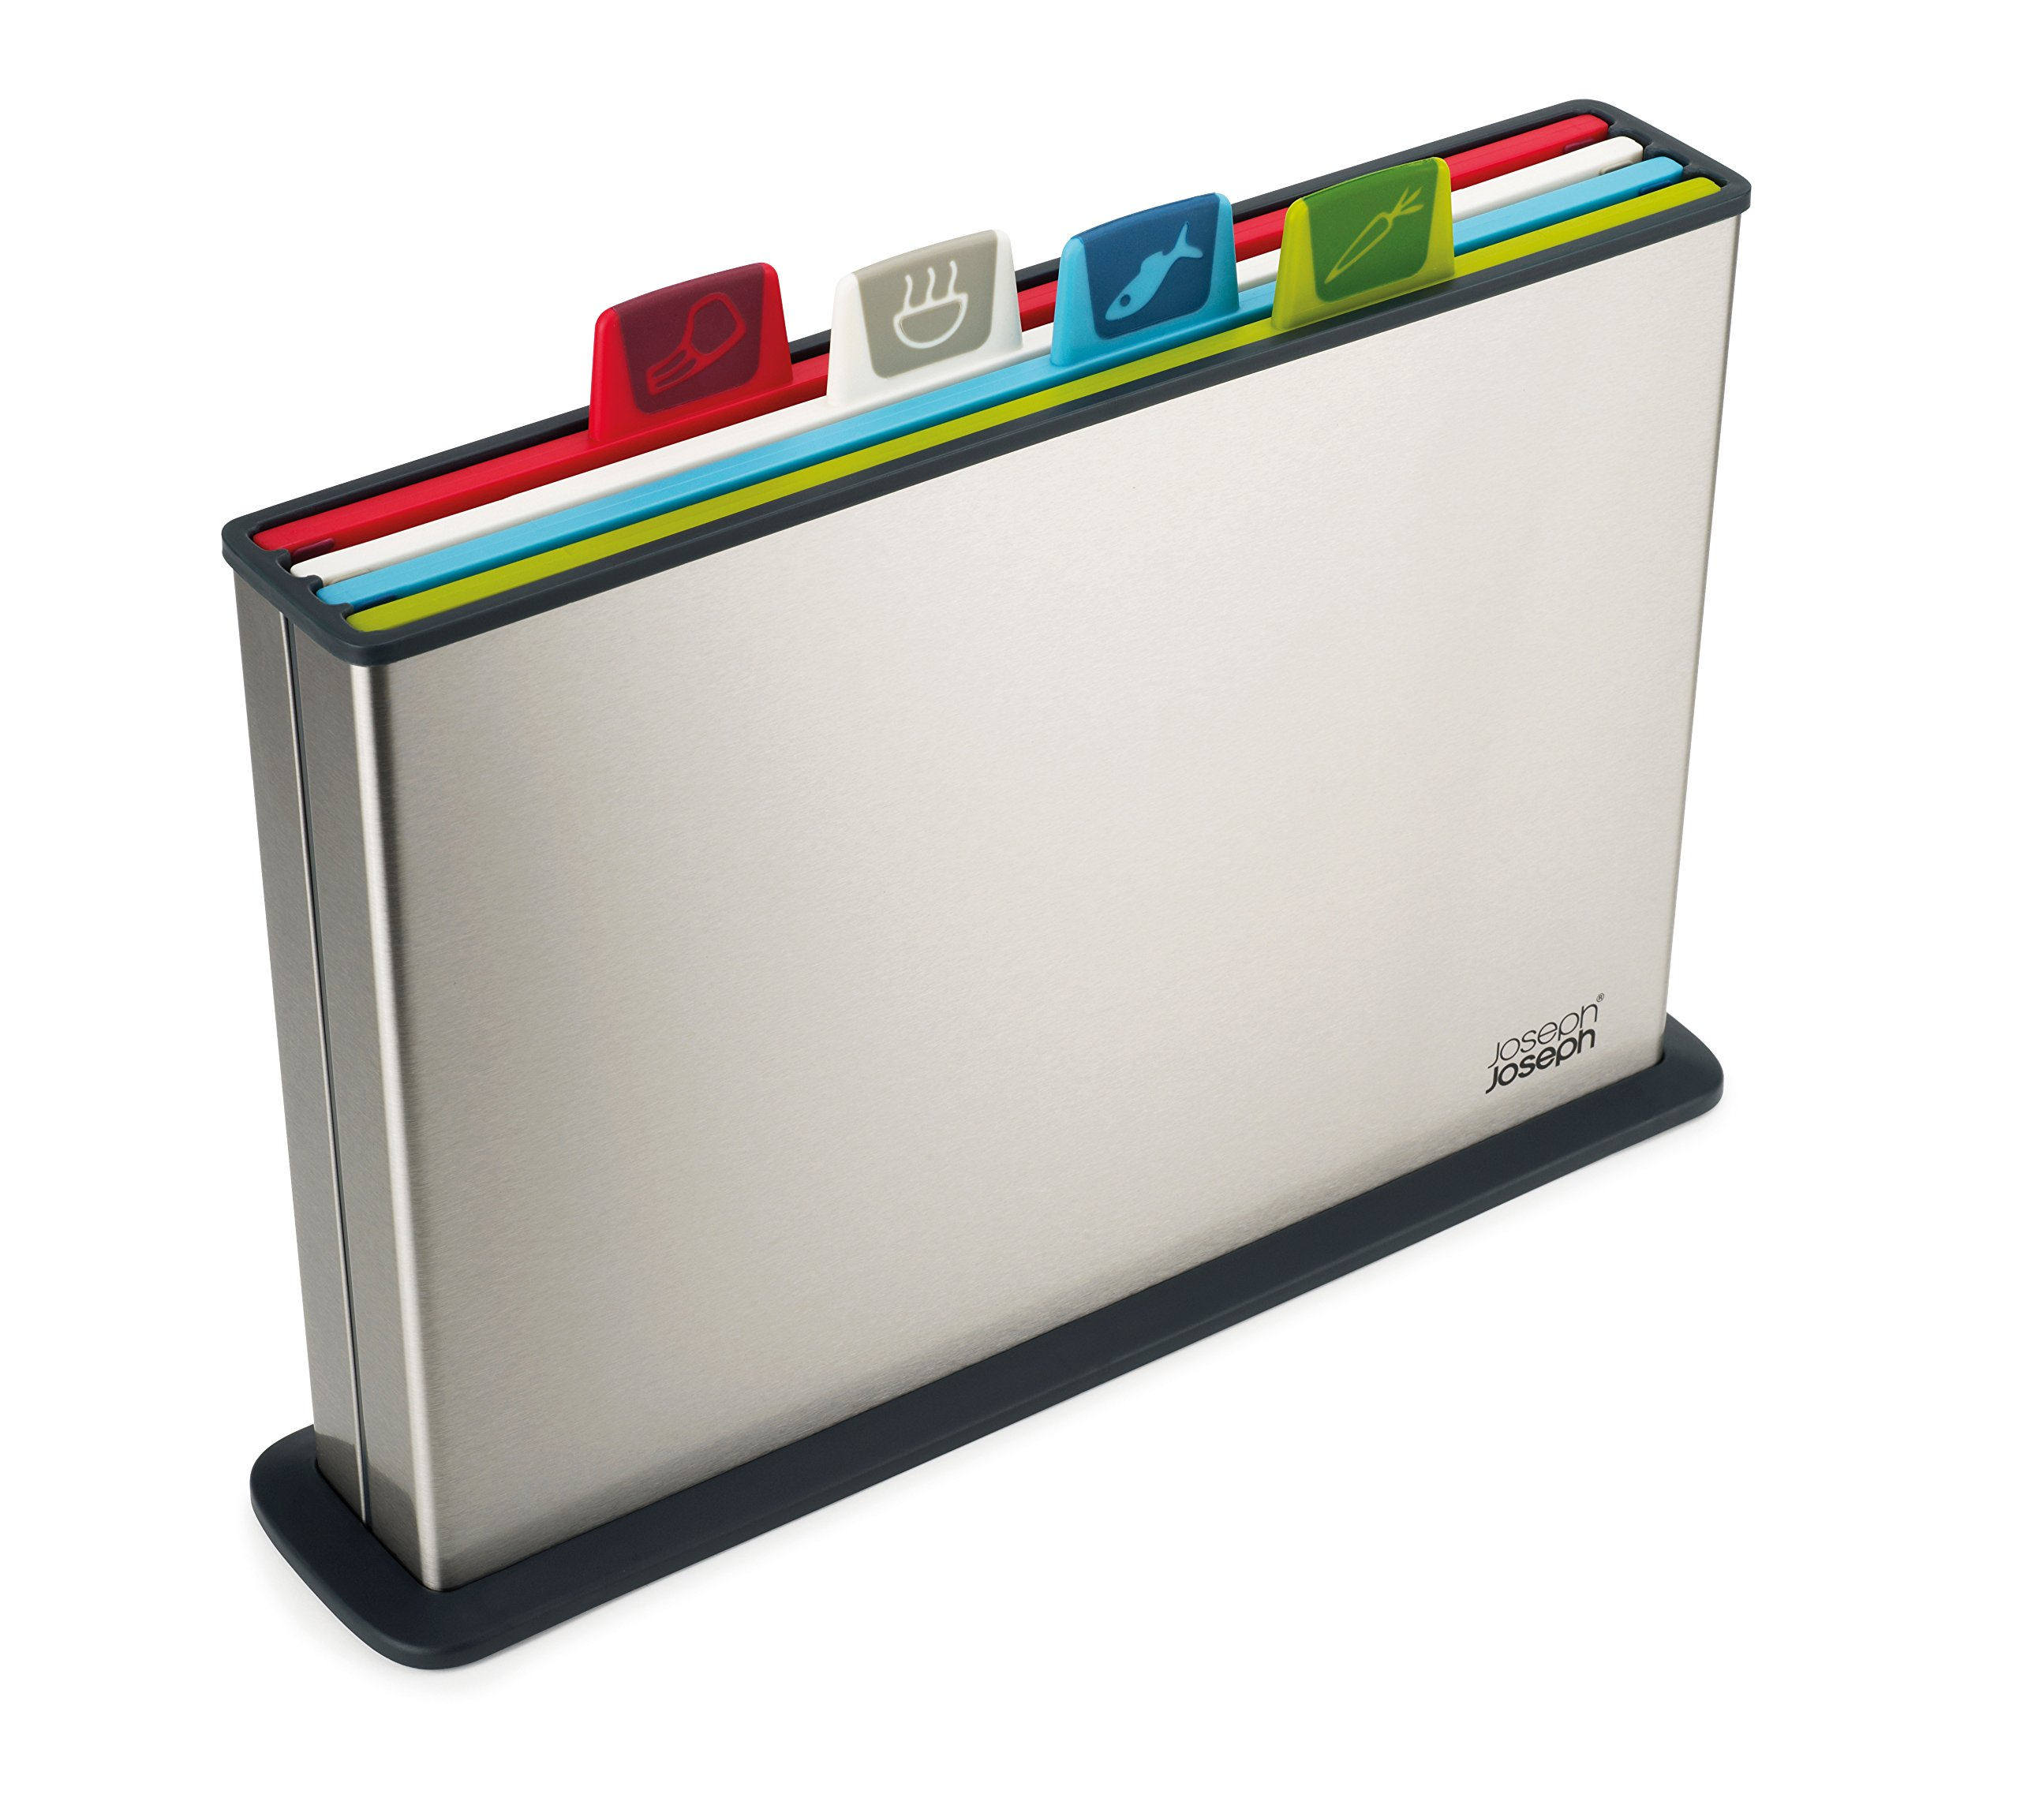 Joseph Joseph 60095 Index Plastic Cutting Board Set with Stainless Steel Storage Case Color-Coded Dishwasher-Safe Non-Slip, Large, Steel Multicolored by Joseph Joseph